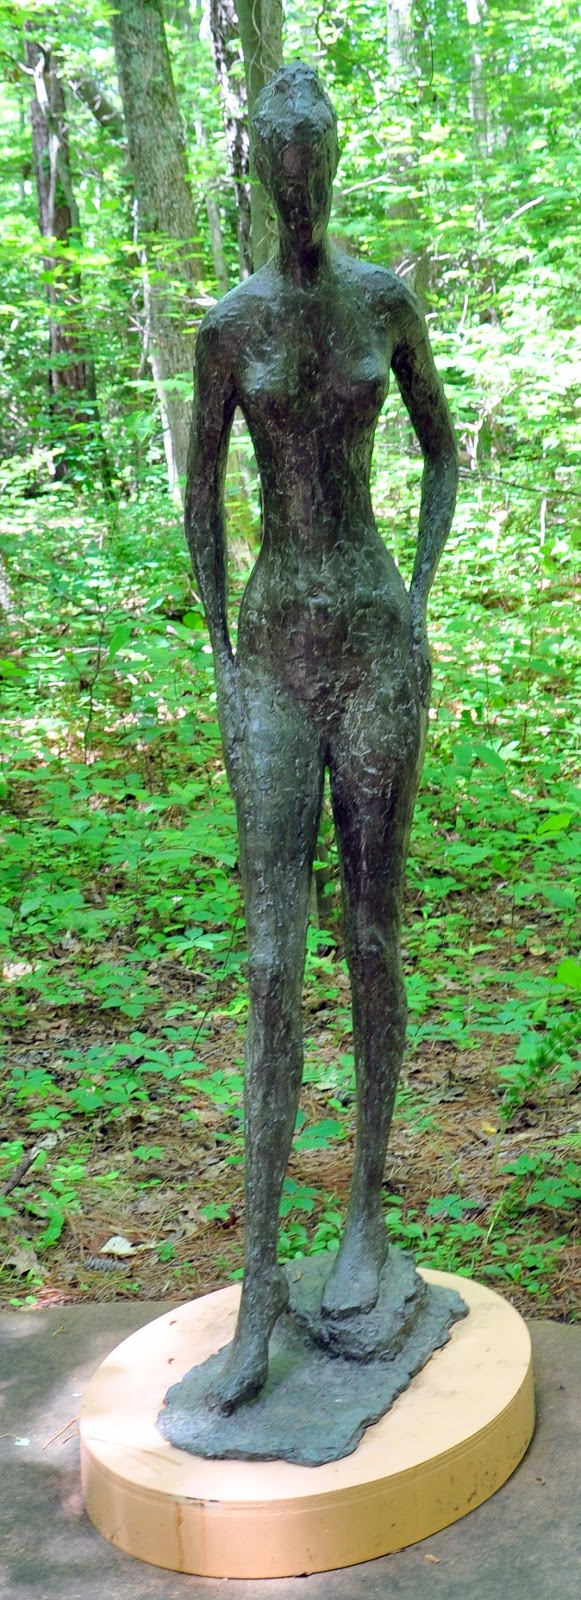 Mid Atlantic Daytrips Exploring Outdoor Art At Annmarie